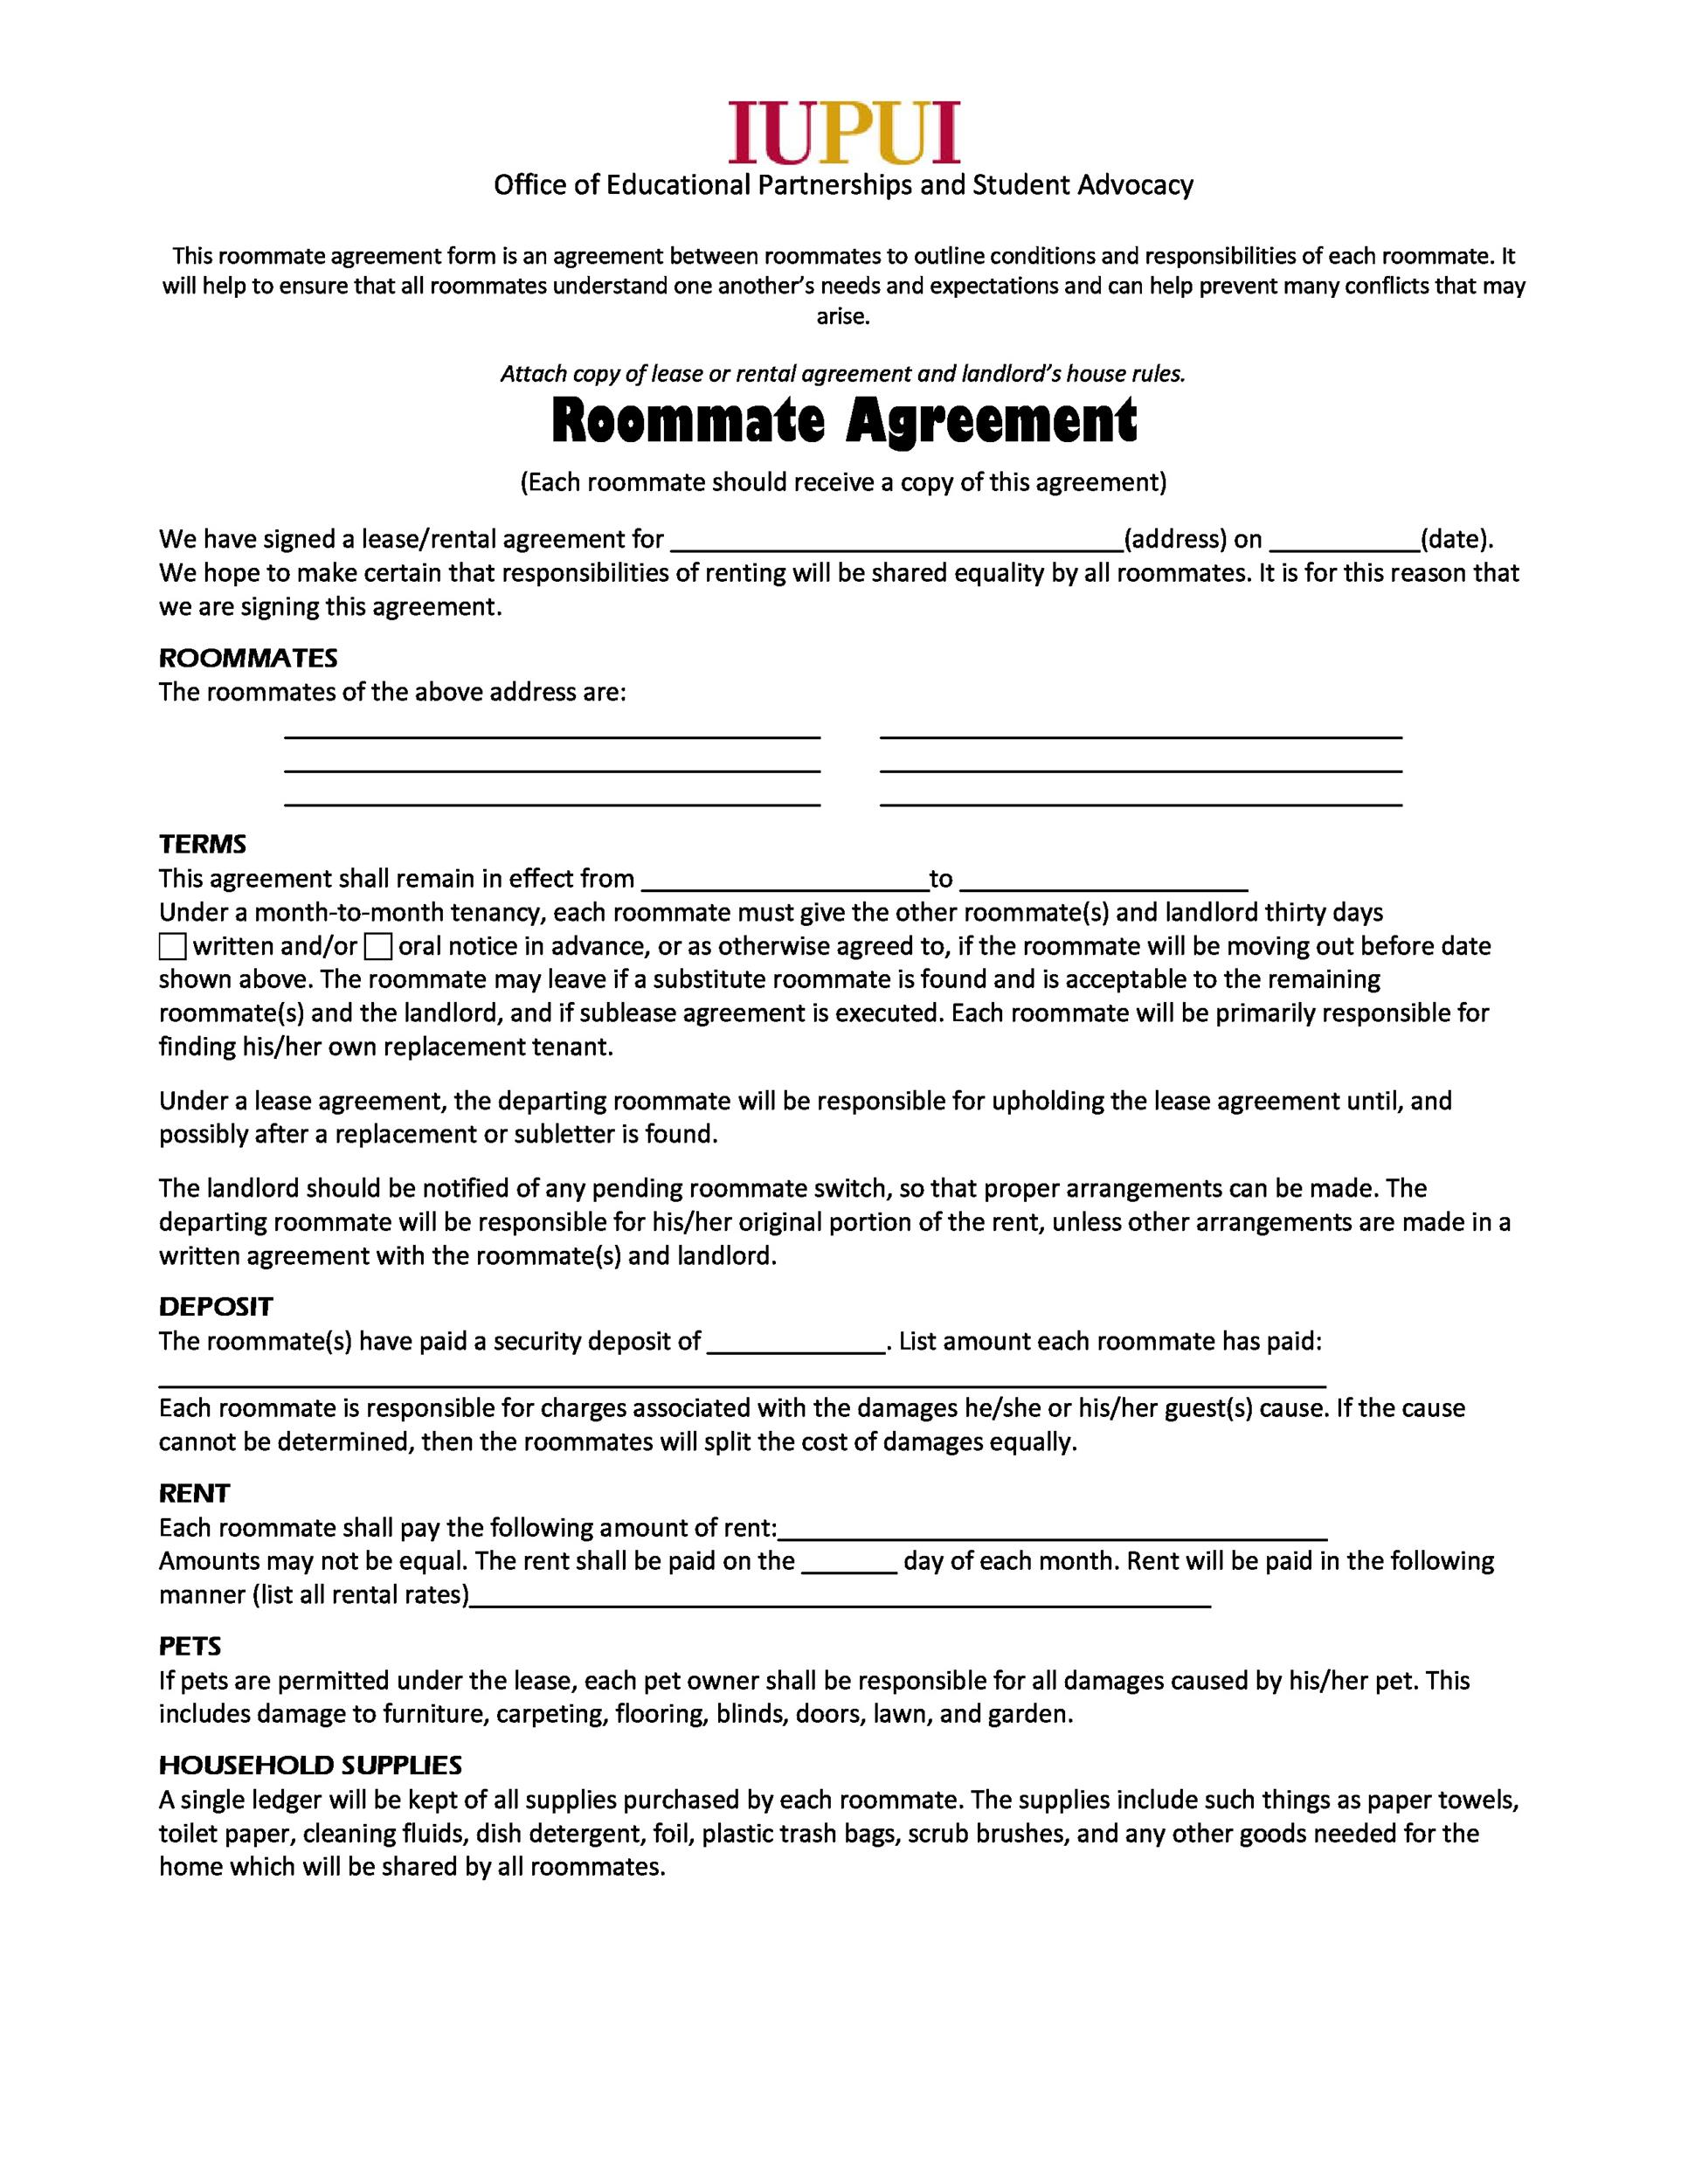 40 Free Roommate Agreement Templates Forms Word PDF – Roommate Lease Agreement